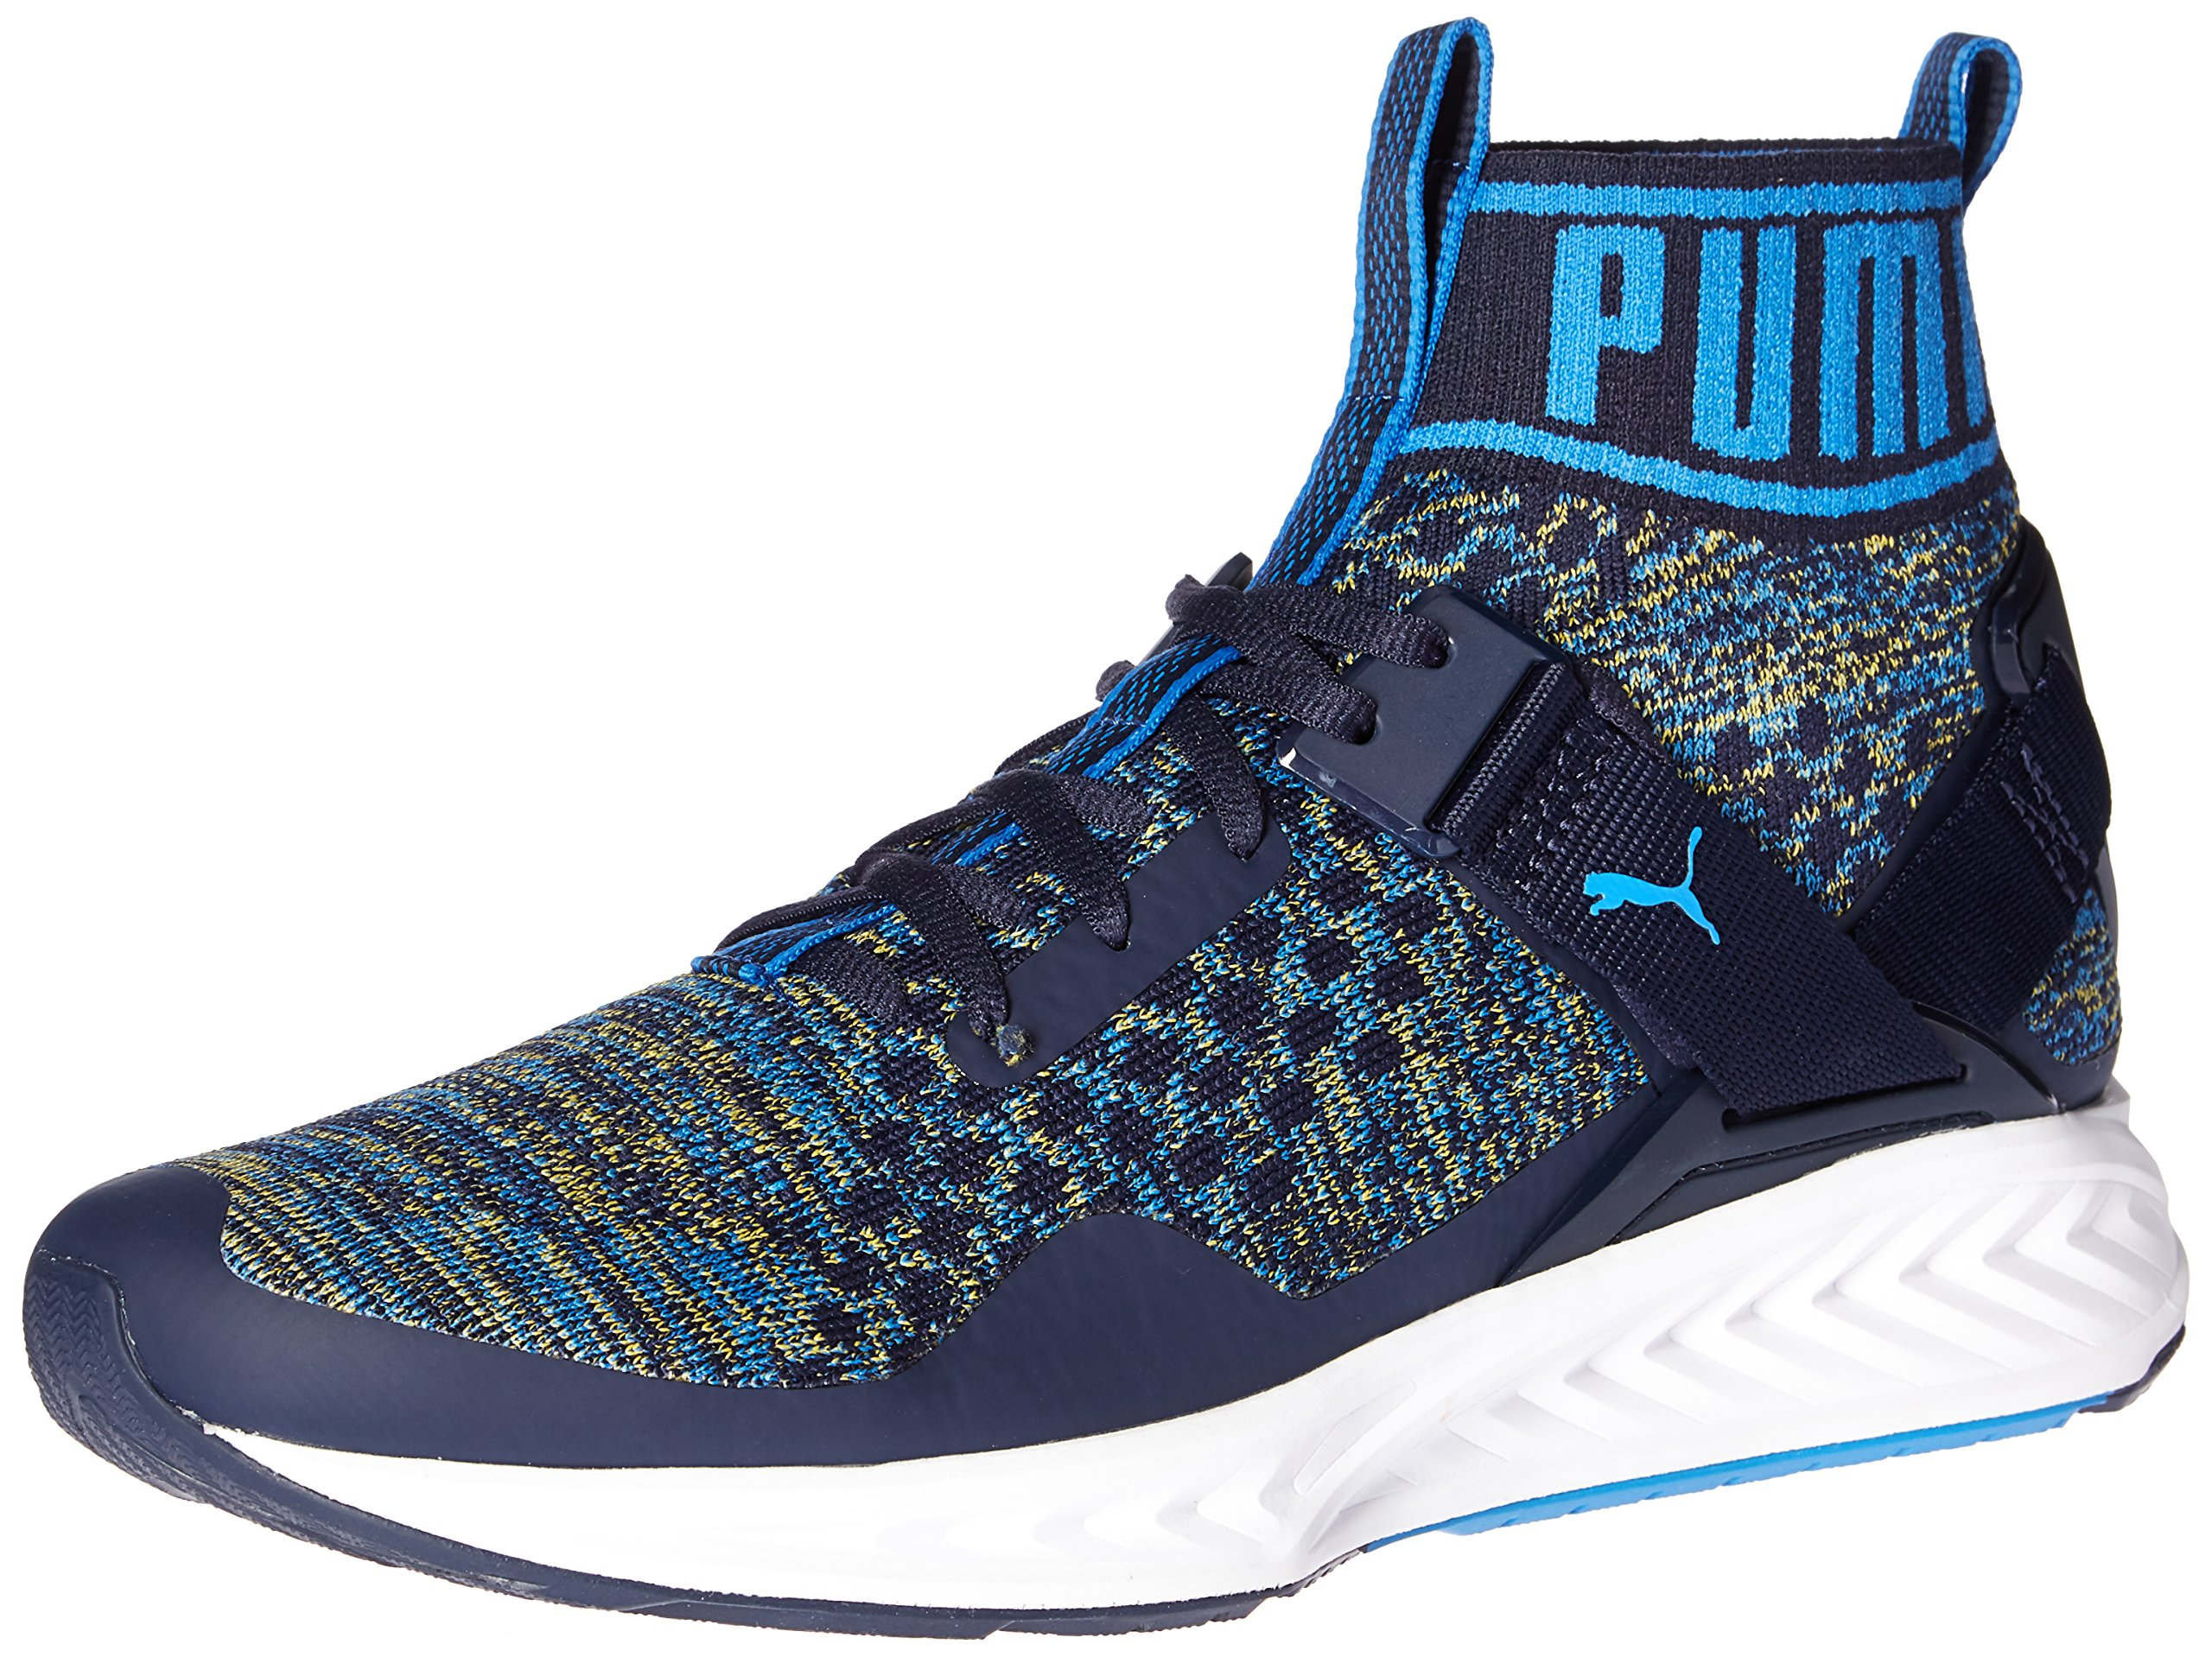 PUMA Men's Ignite Evoknit Cross-Trainer Shoe, Peacoat-French Blue, 9.5 M US